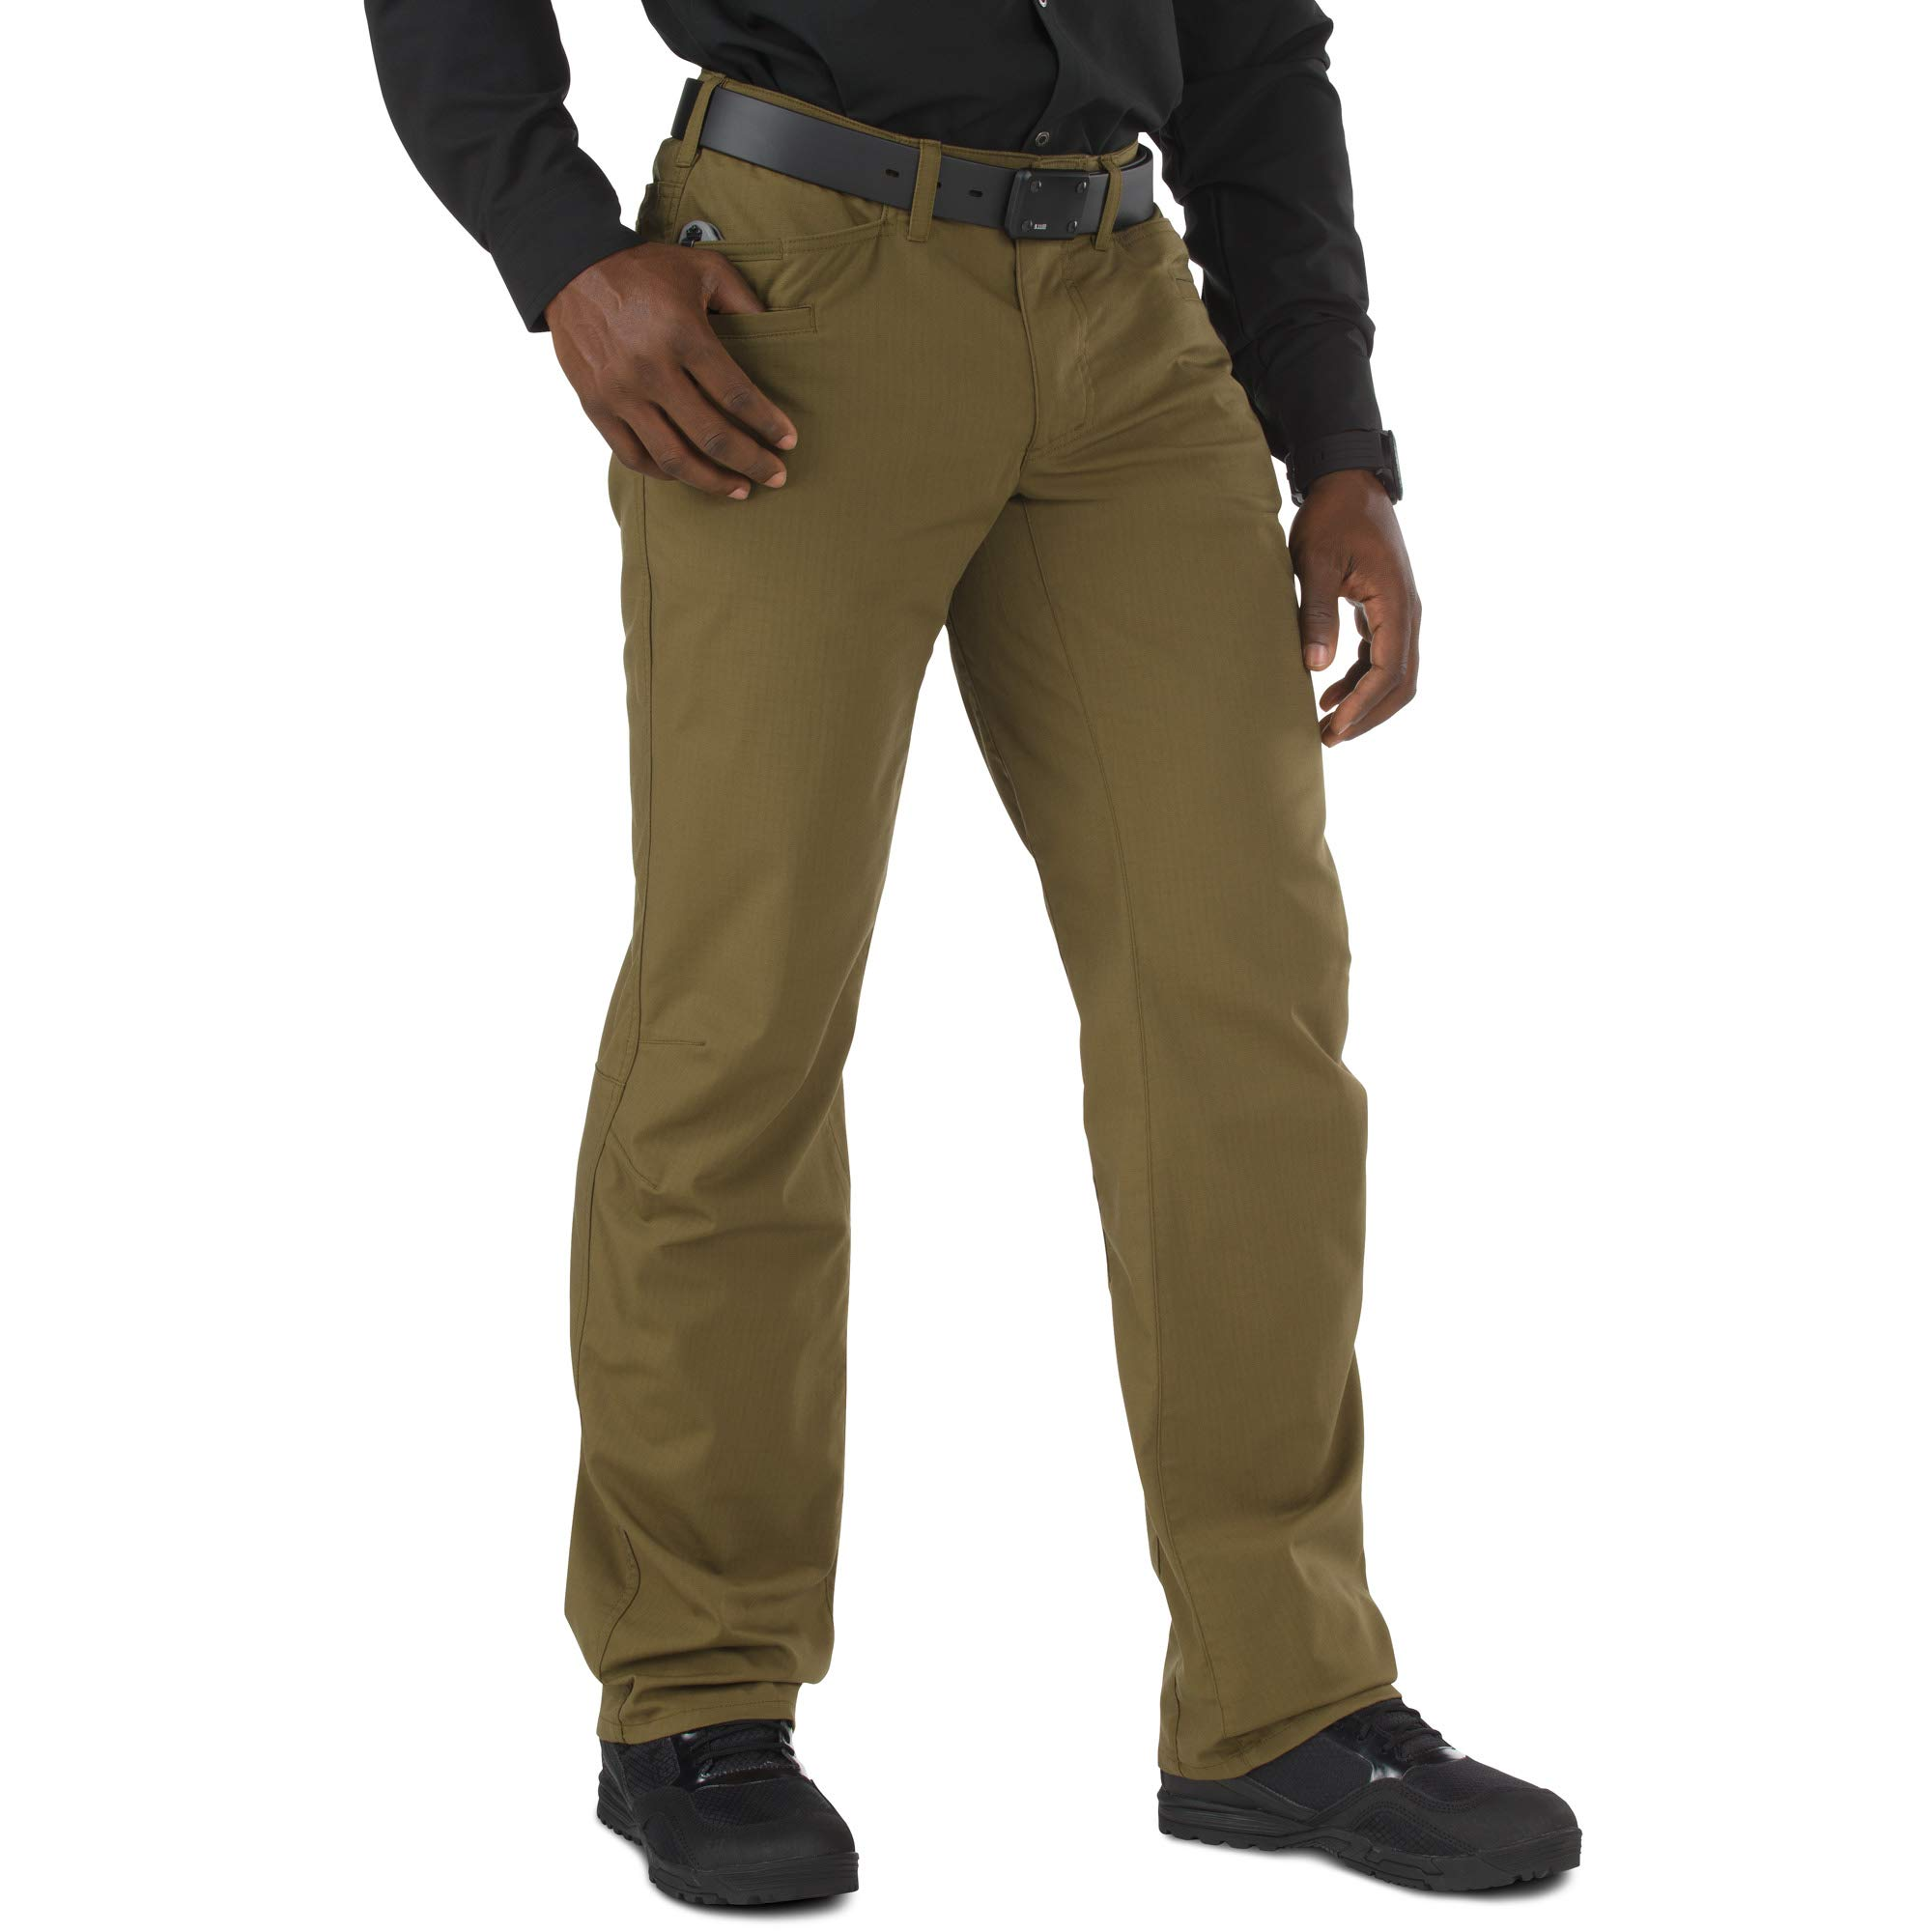 5.11 Tactical Ridgeline Pant,Field Green,28-36 by 5.11